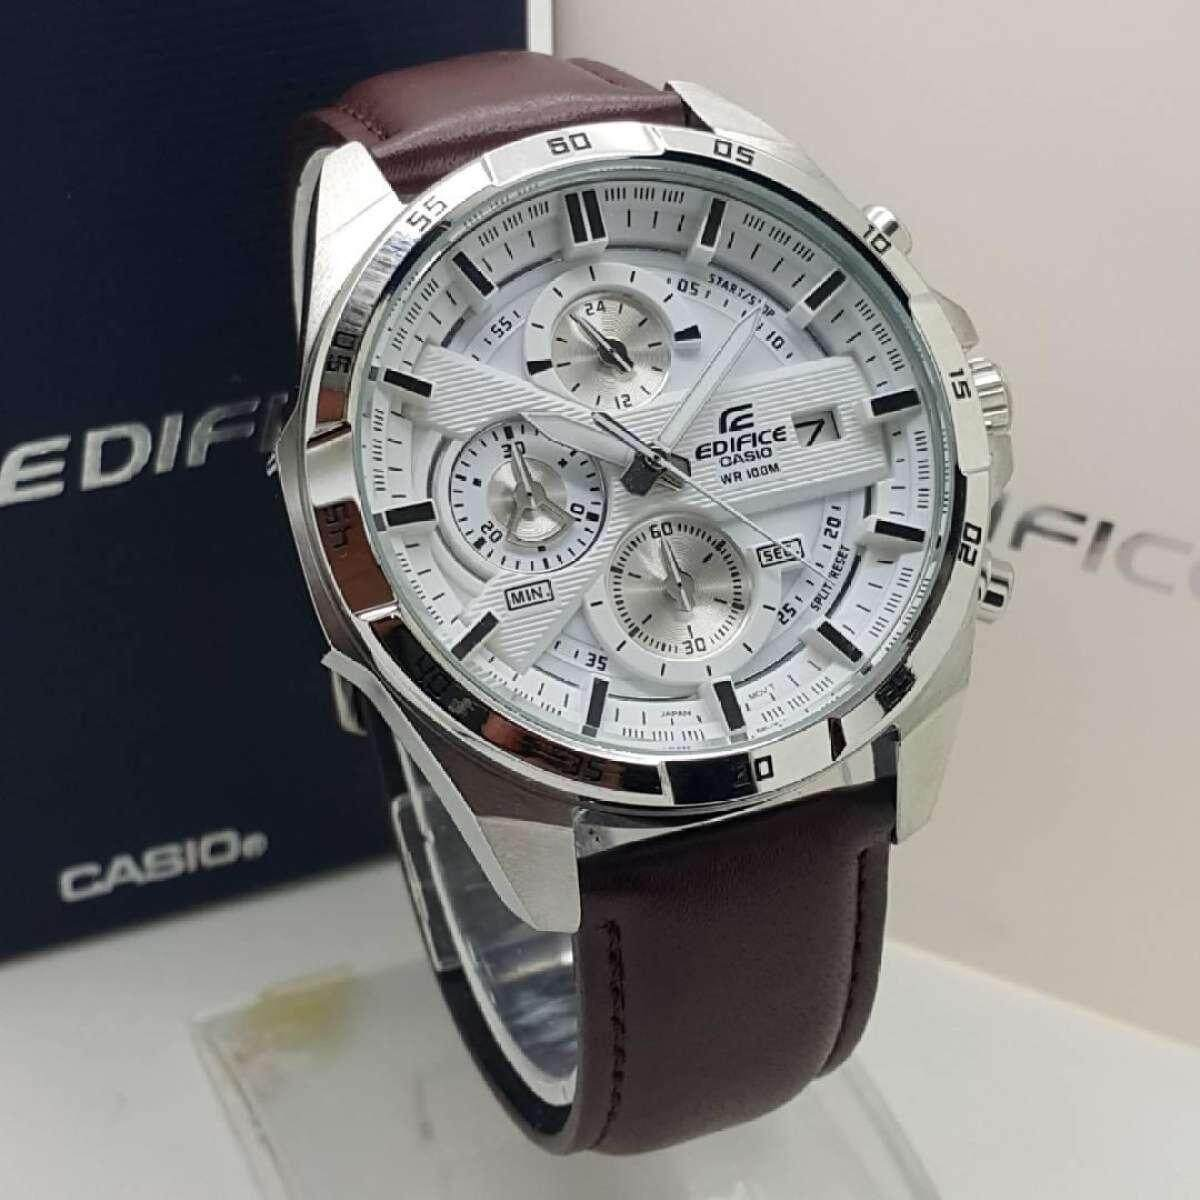 Brand New C asio E difice EFR556d Men's Watch Malaysia